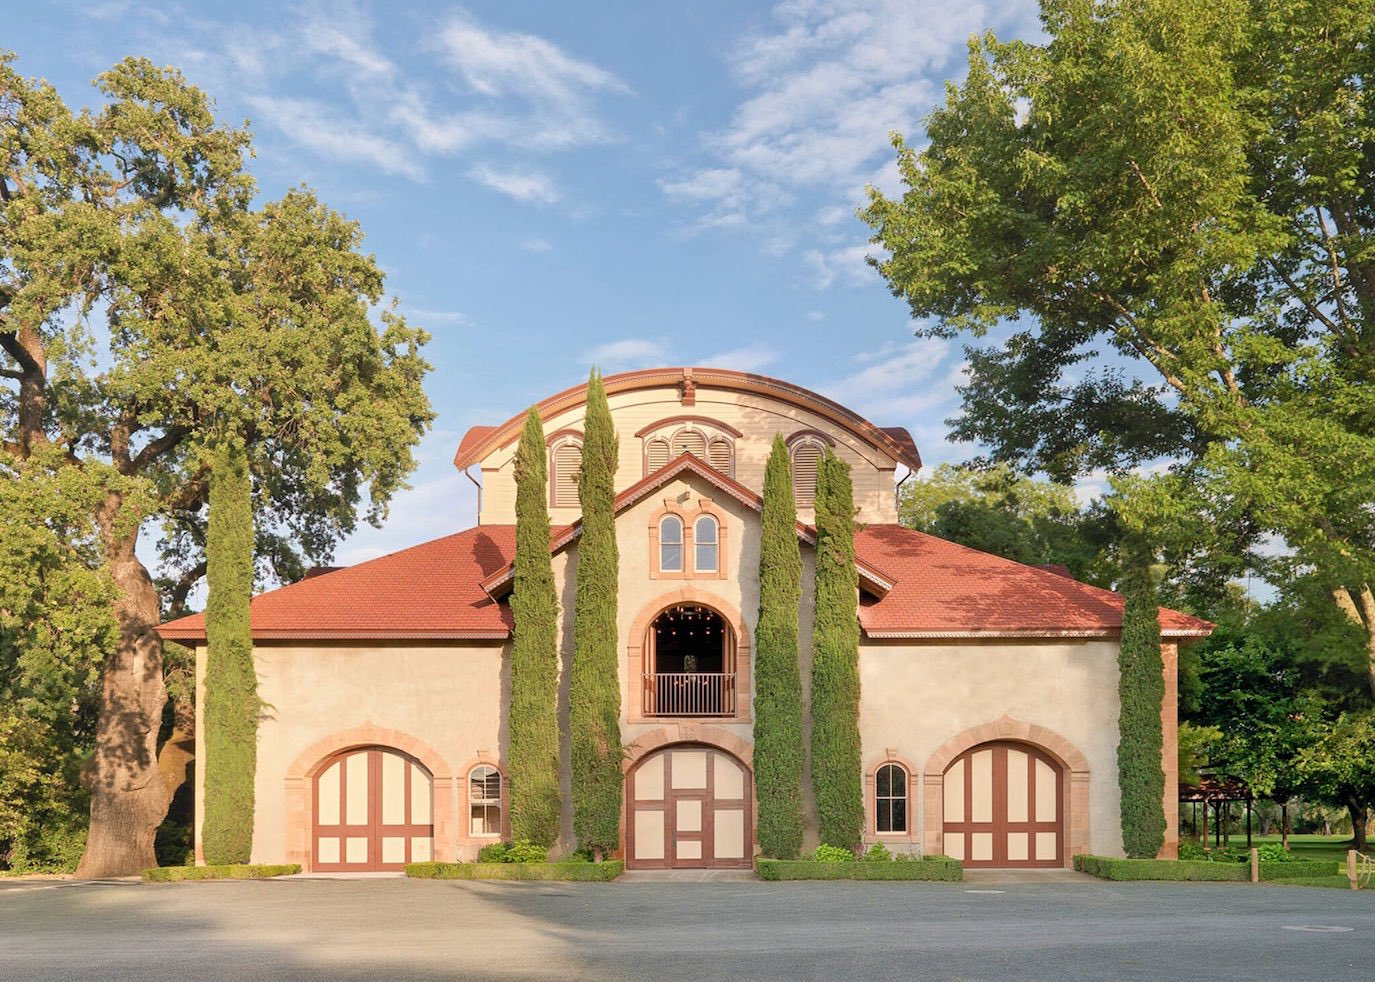 The carriage house at Charles Krug will transform into a screening site